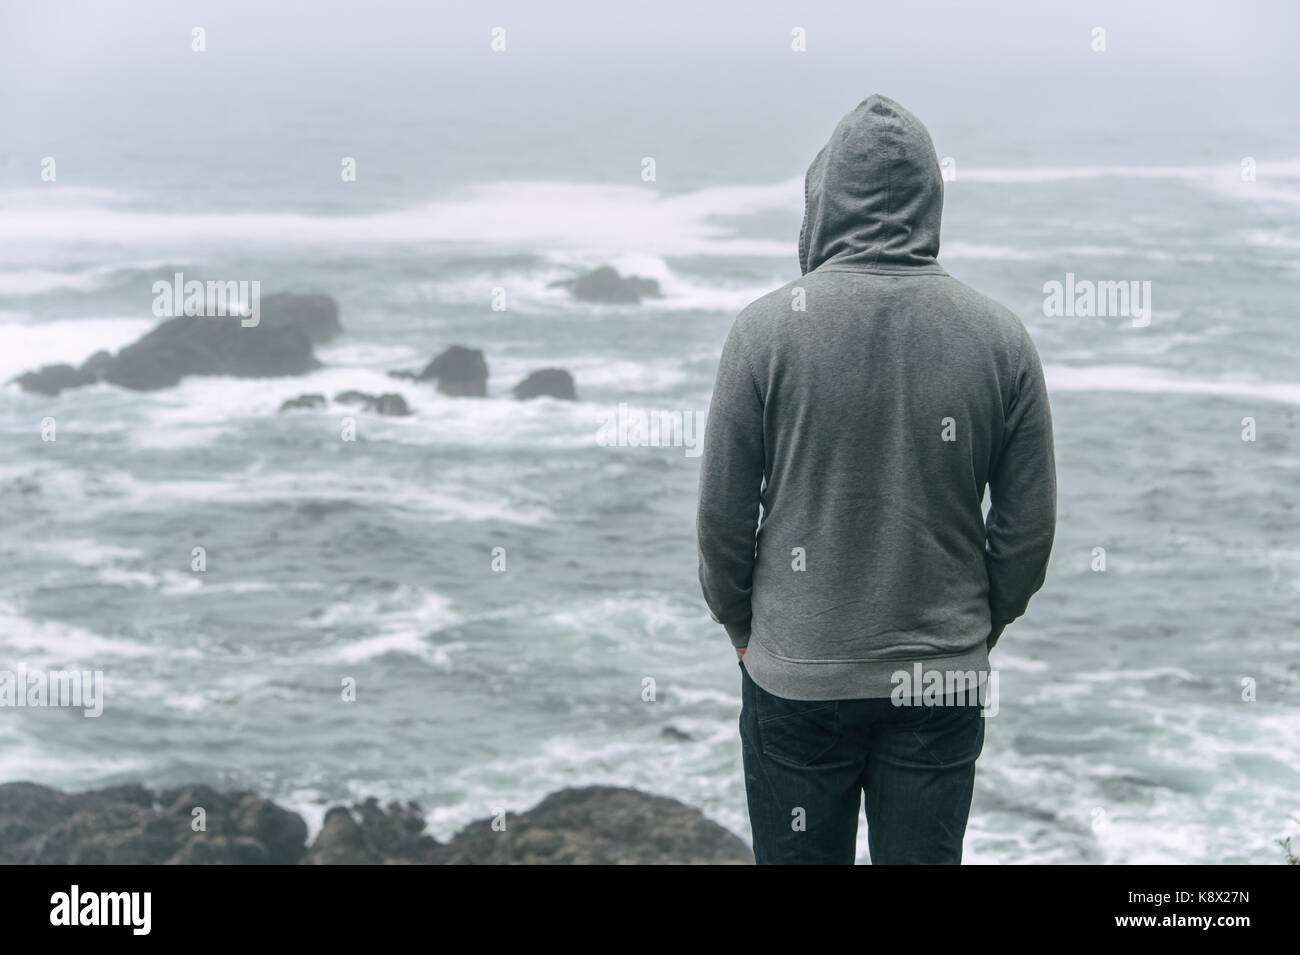 Sad and lonely man standing in front of the pacific ocean and looking at the stormy sea on Vancouver Island. - Stock Image